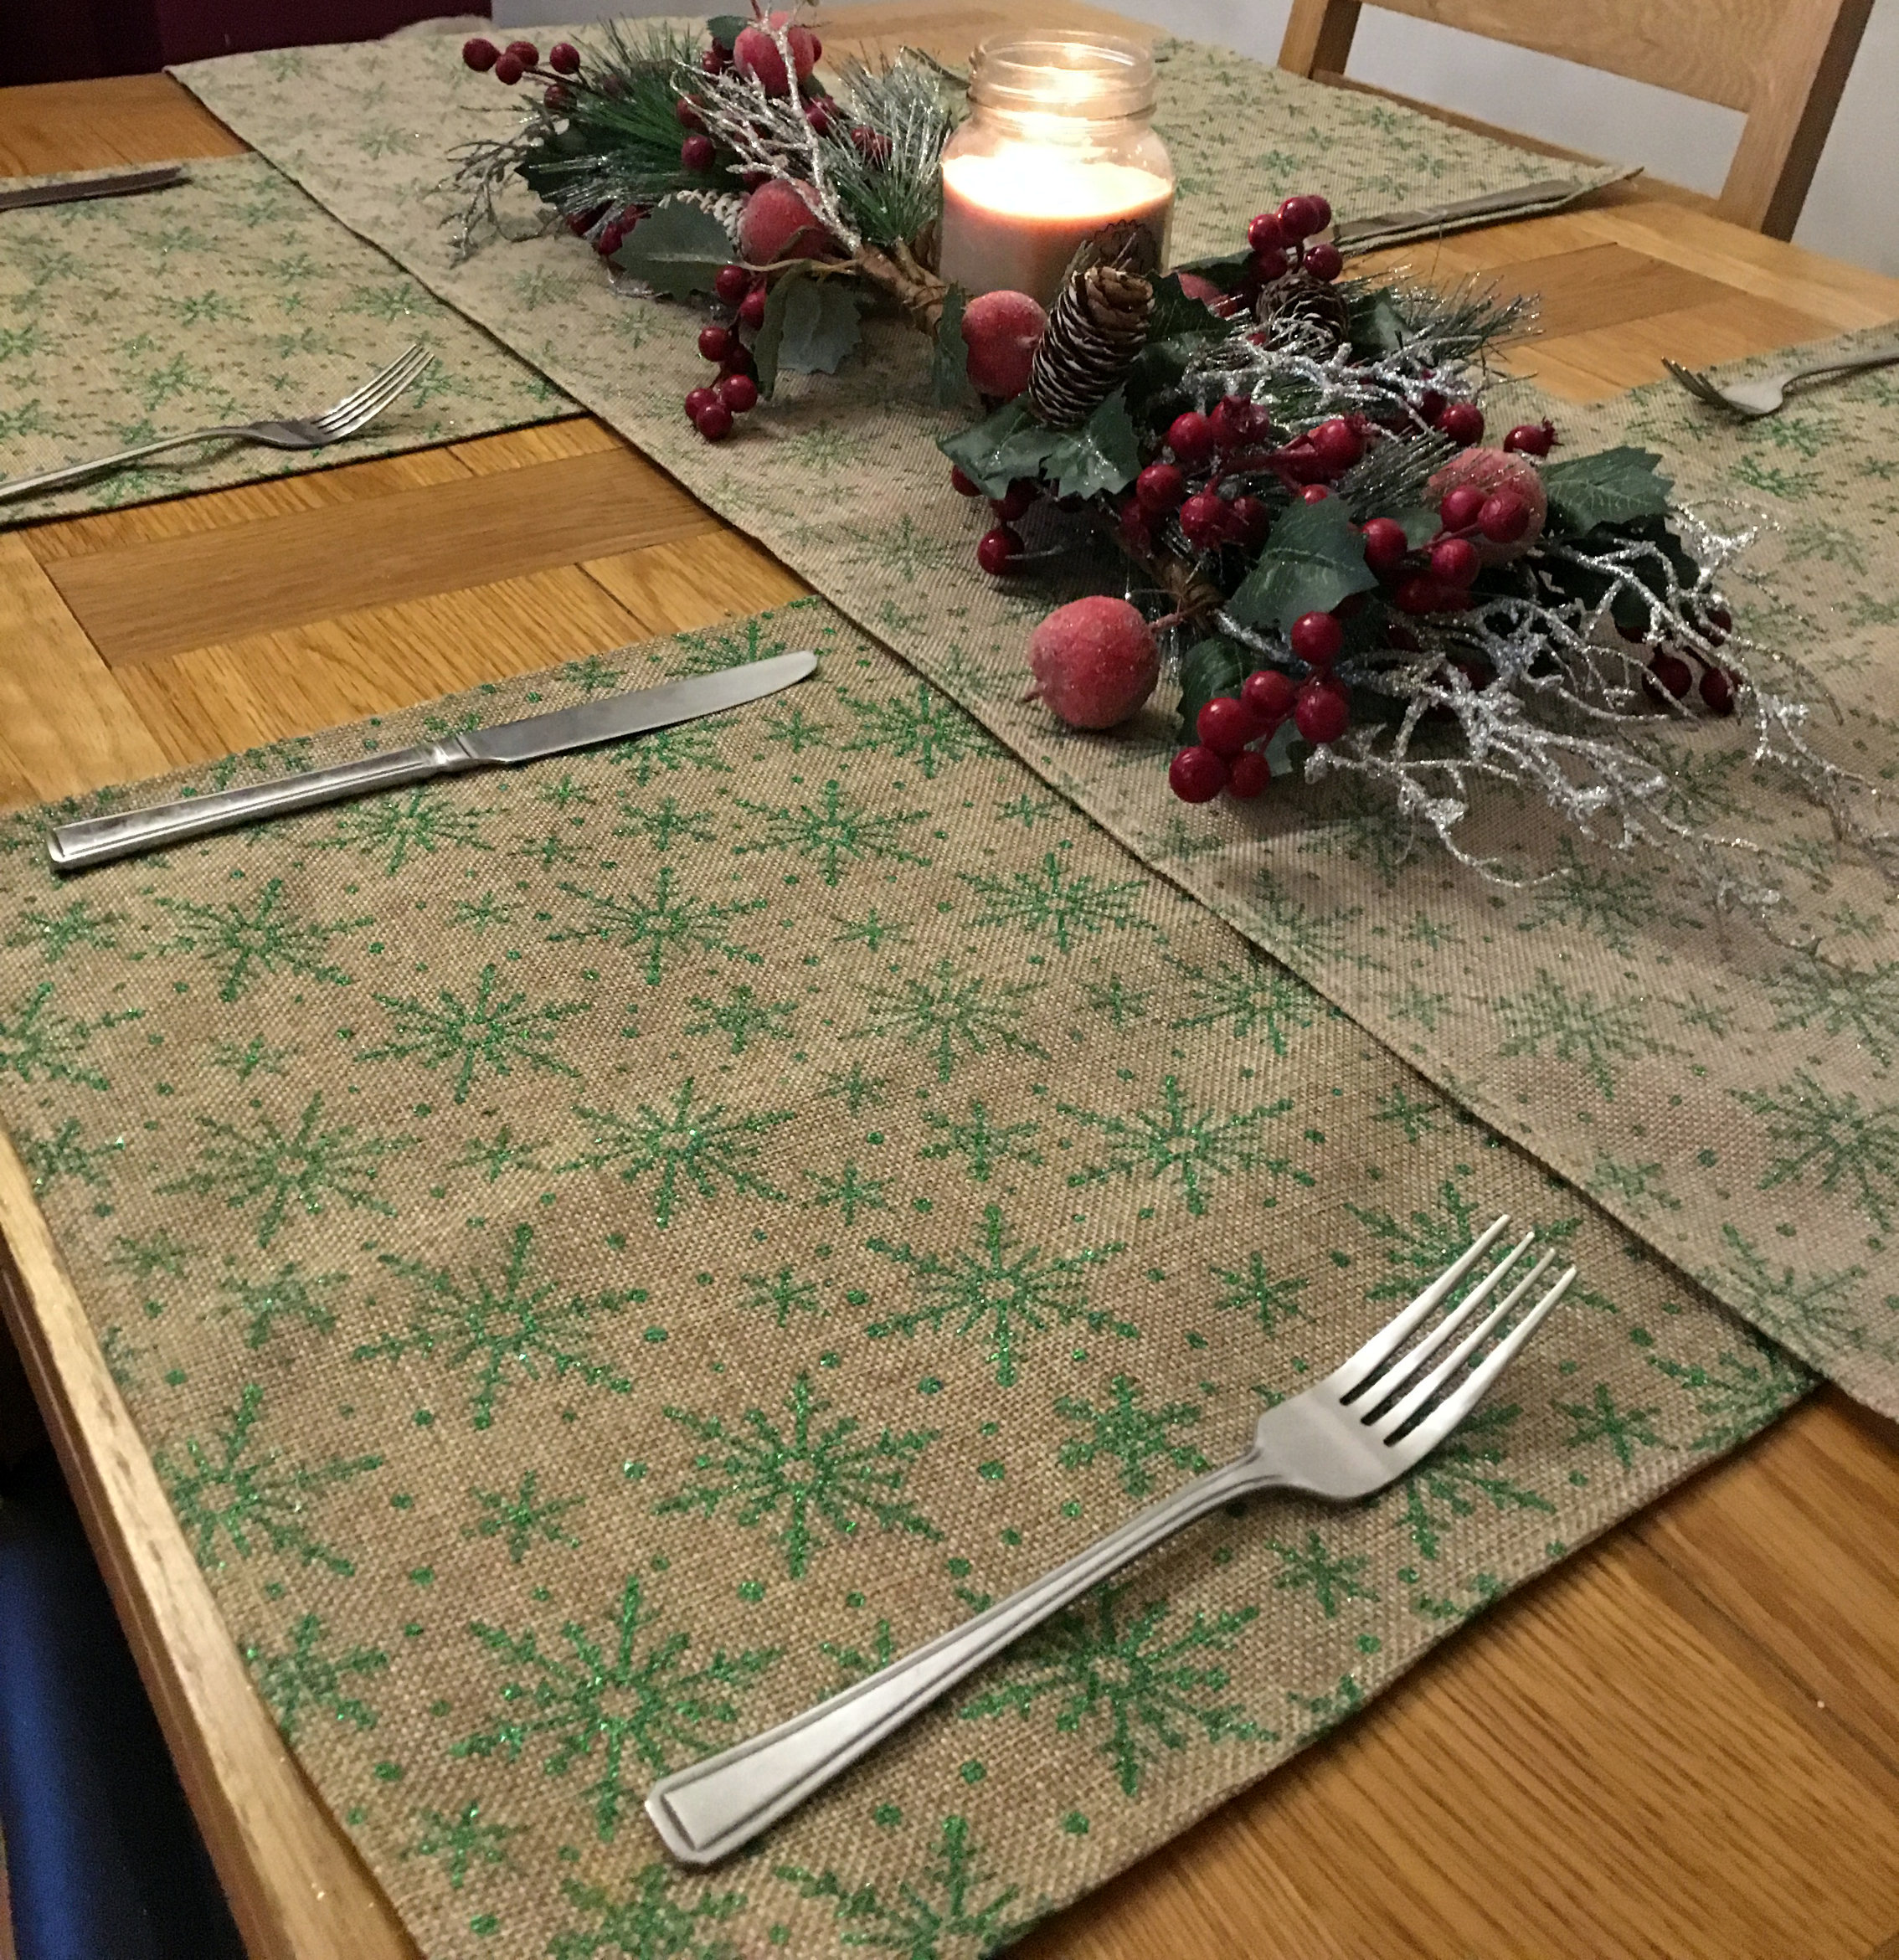 5-Piece-Christmas-Snowflake-Dinner-Table-Place-Mats-And-Runner-Set-Green-Red thumbnail 7